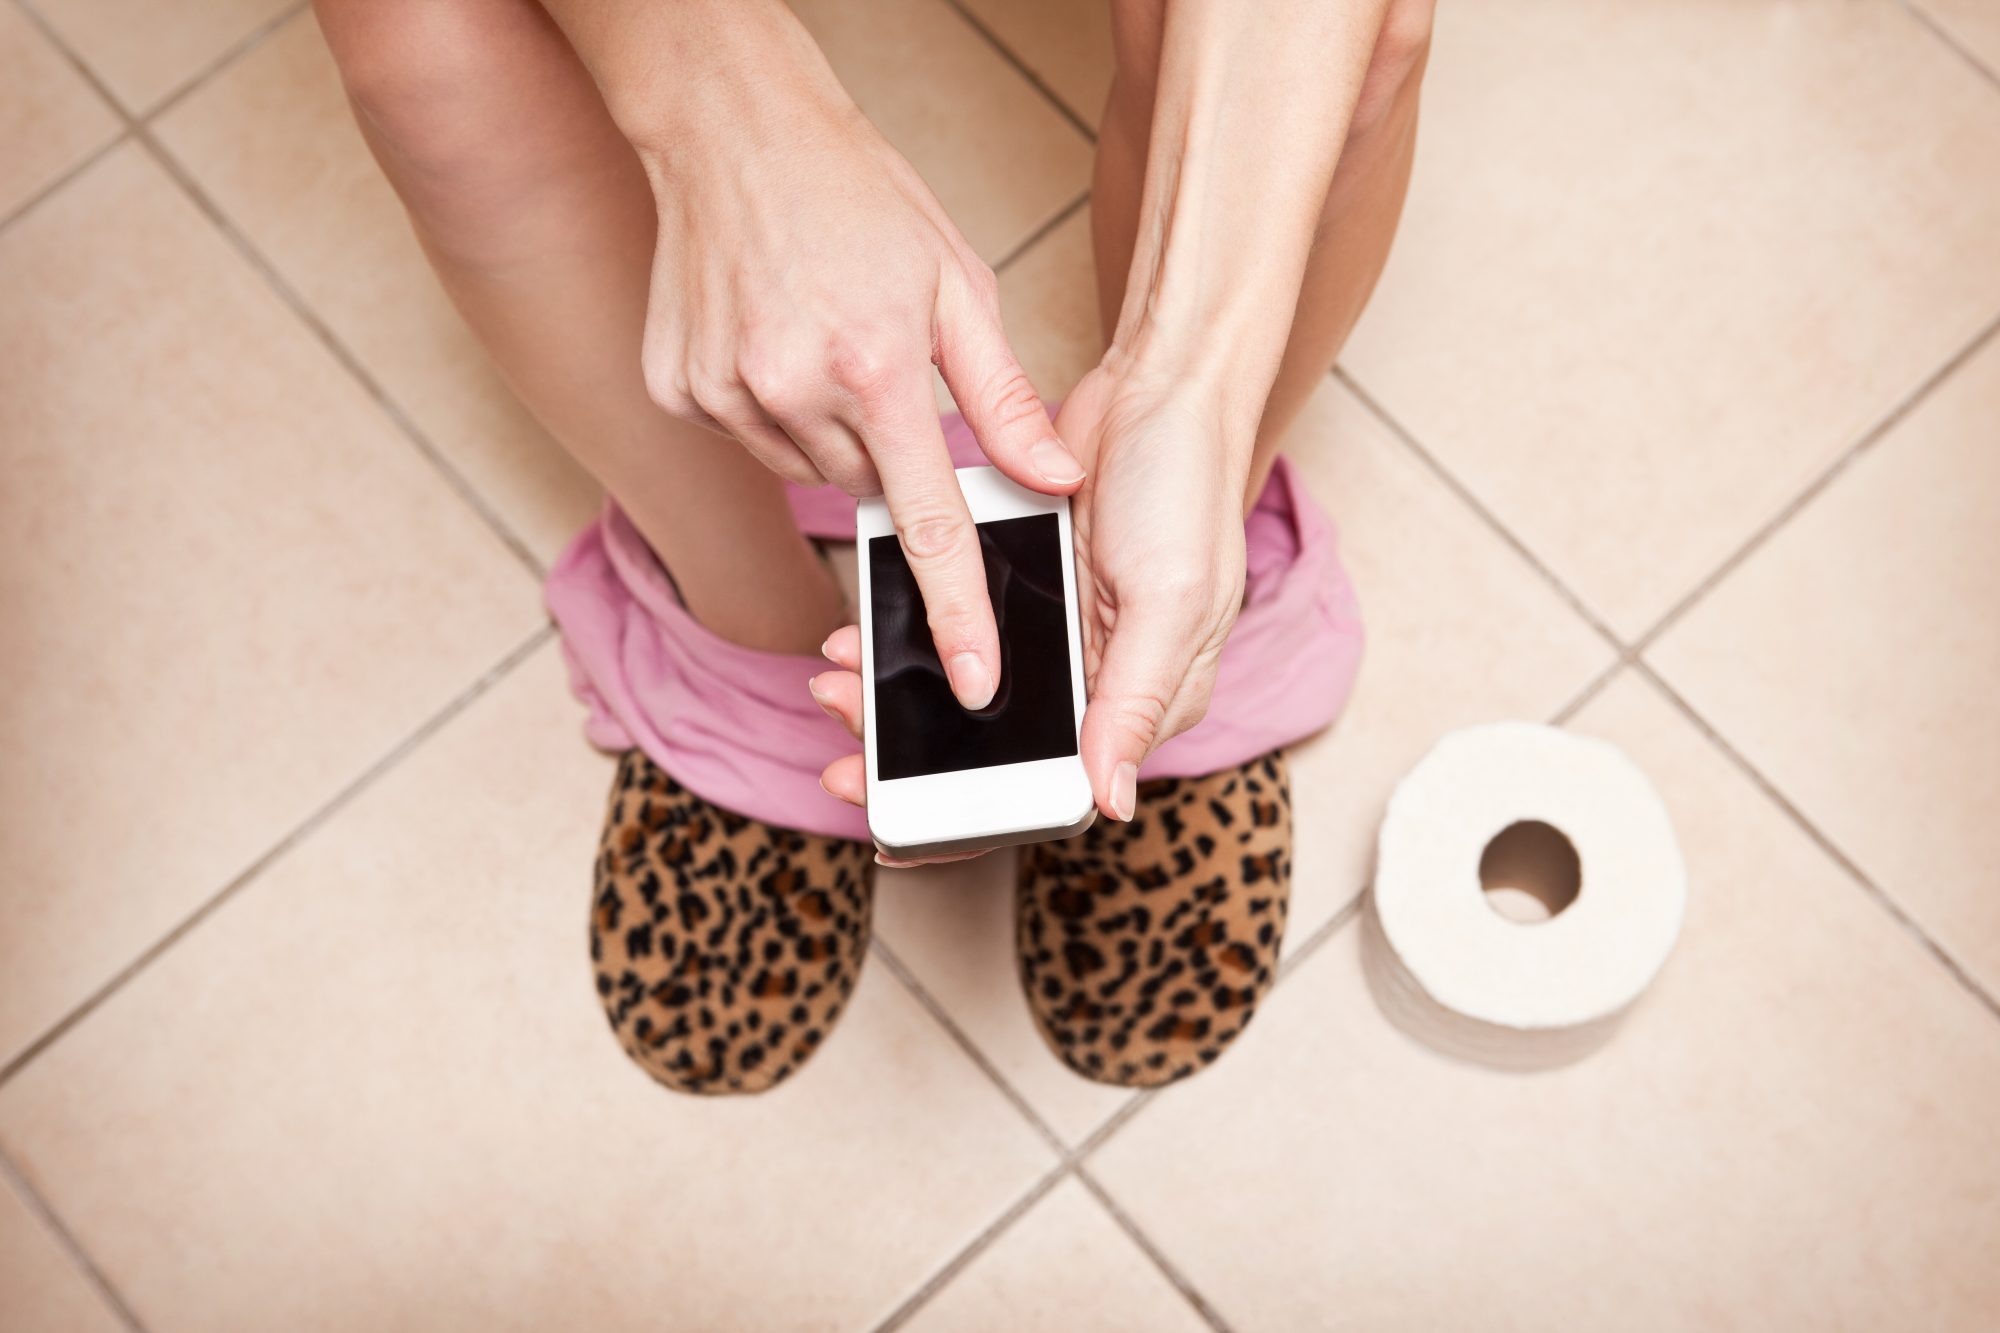 Bringing your phone into the bathroom can make you sick Can a dirty house make you sick